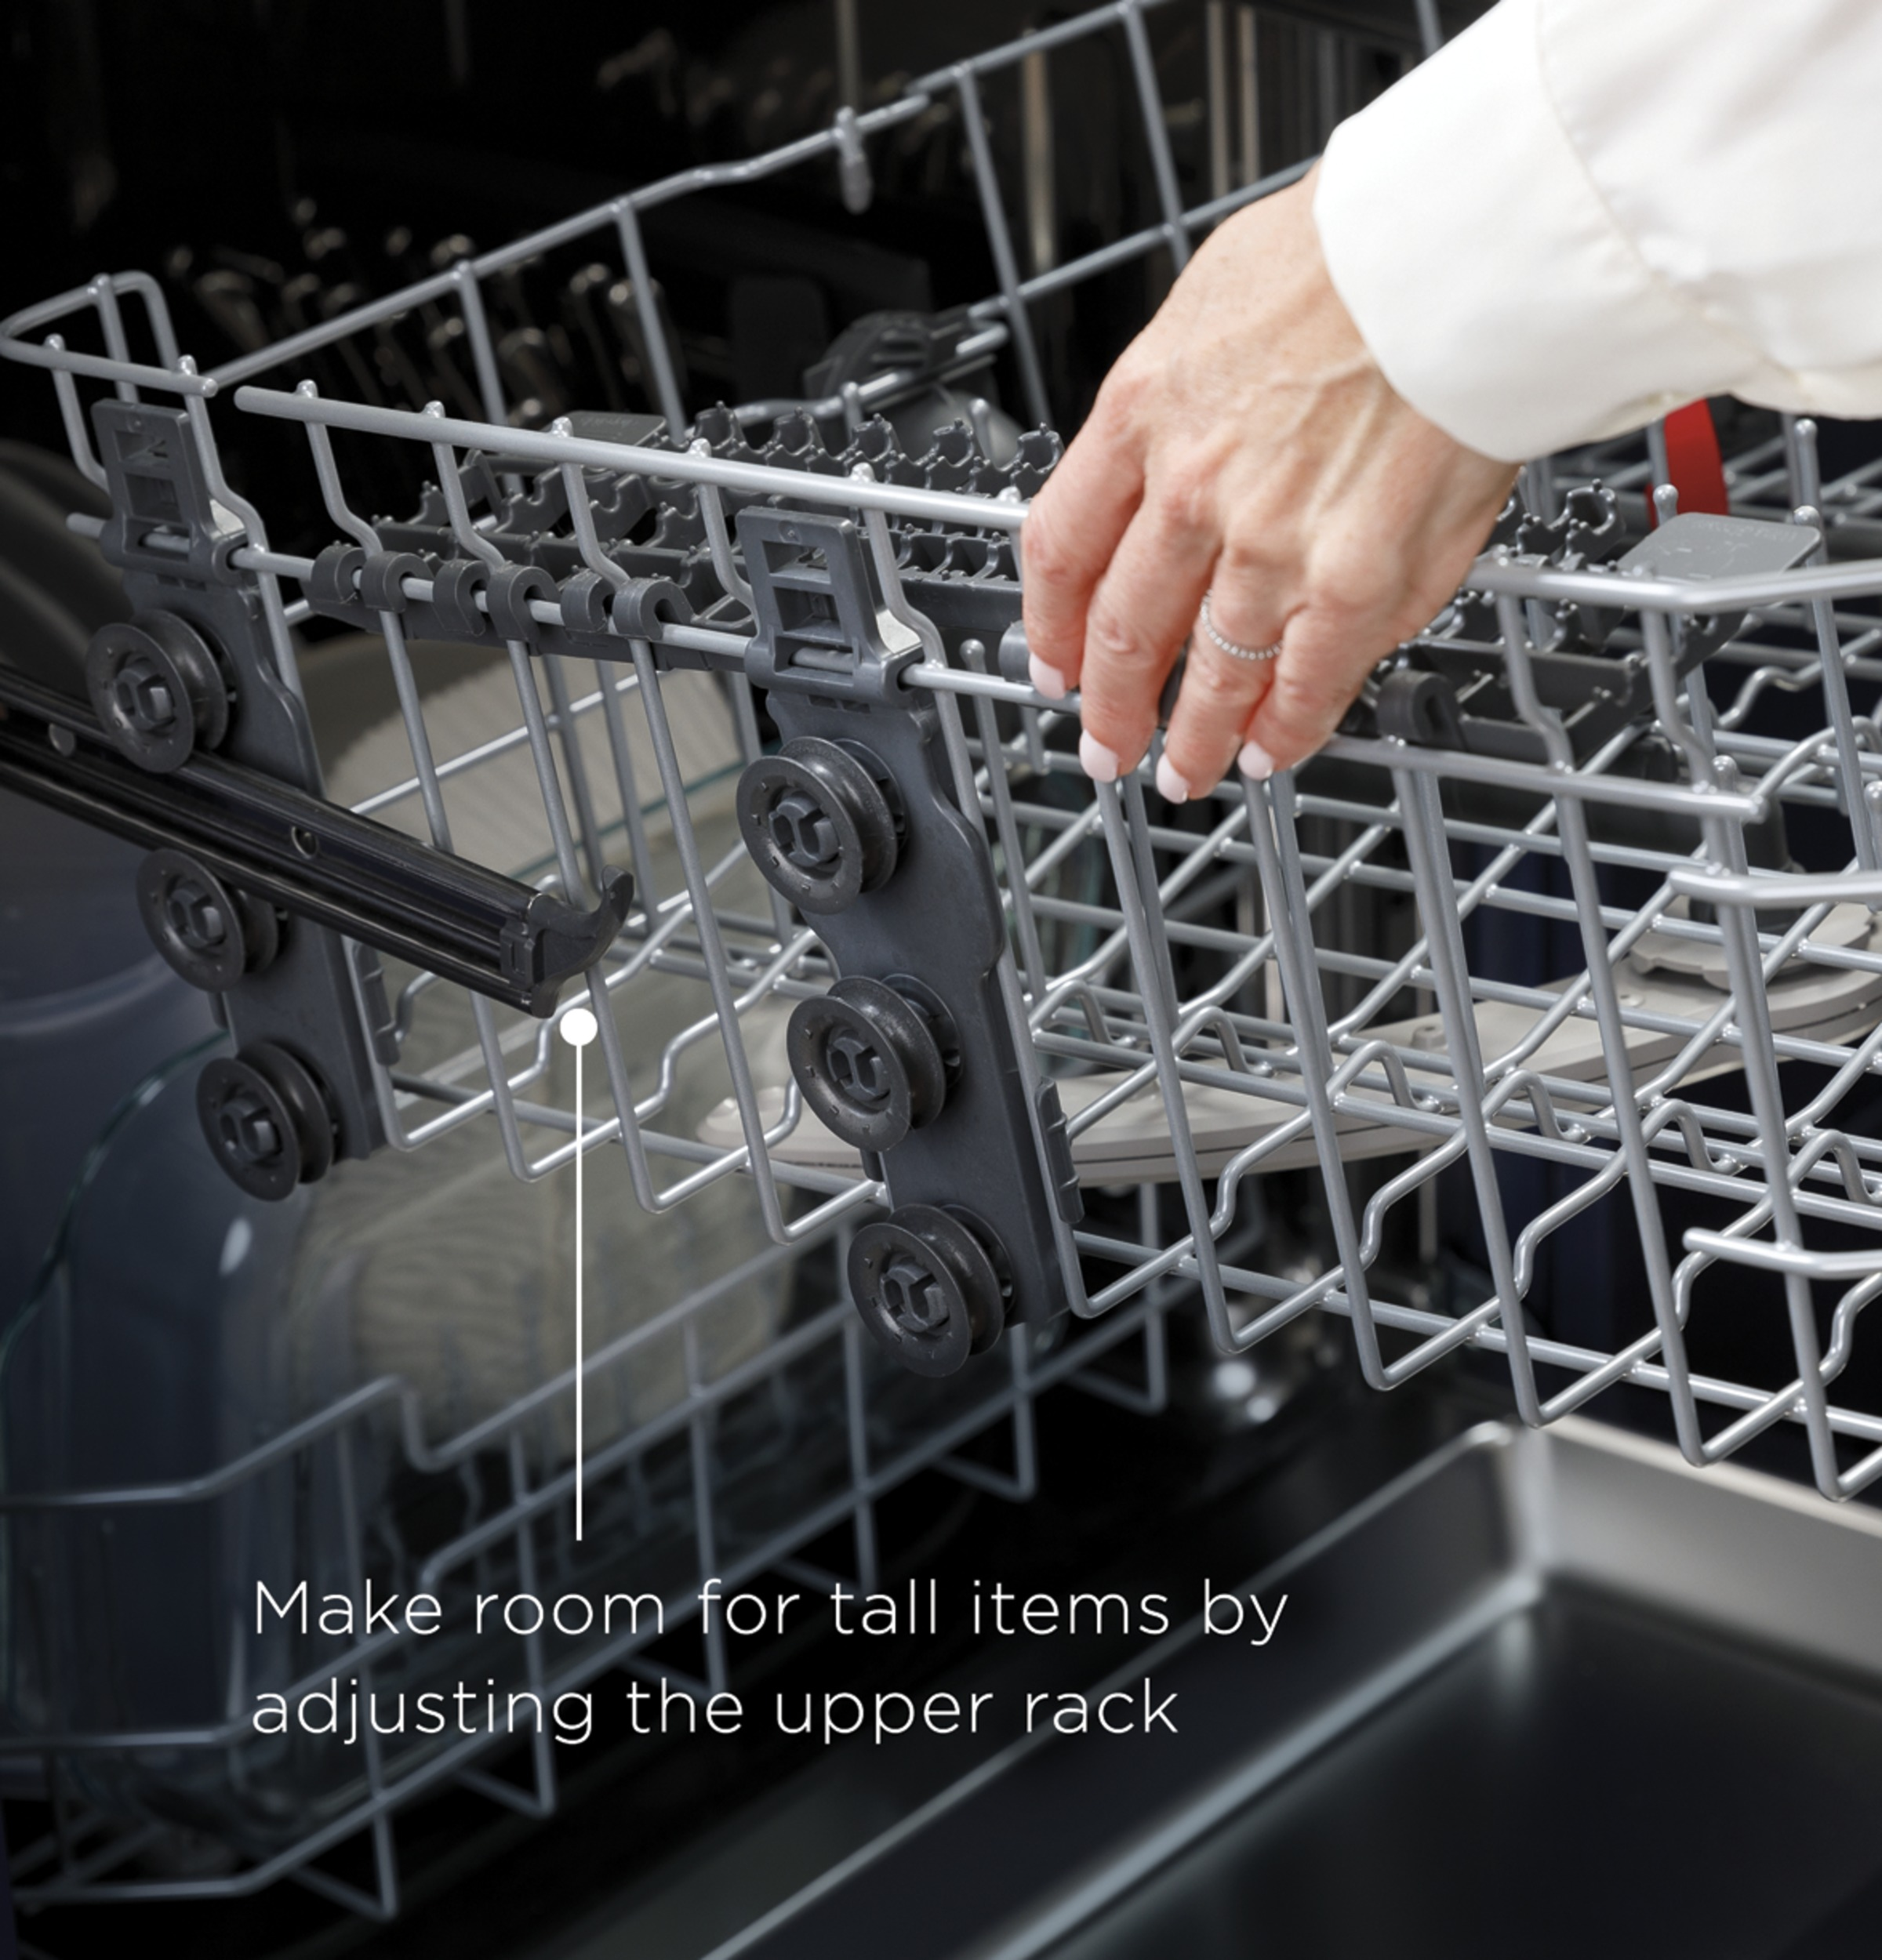 Model: GDF645SGNBB   GE GE® Front Control with Stainless Steel Interior Dishwasher with Sanitize Cycle & Dry Boost